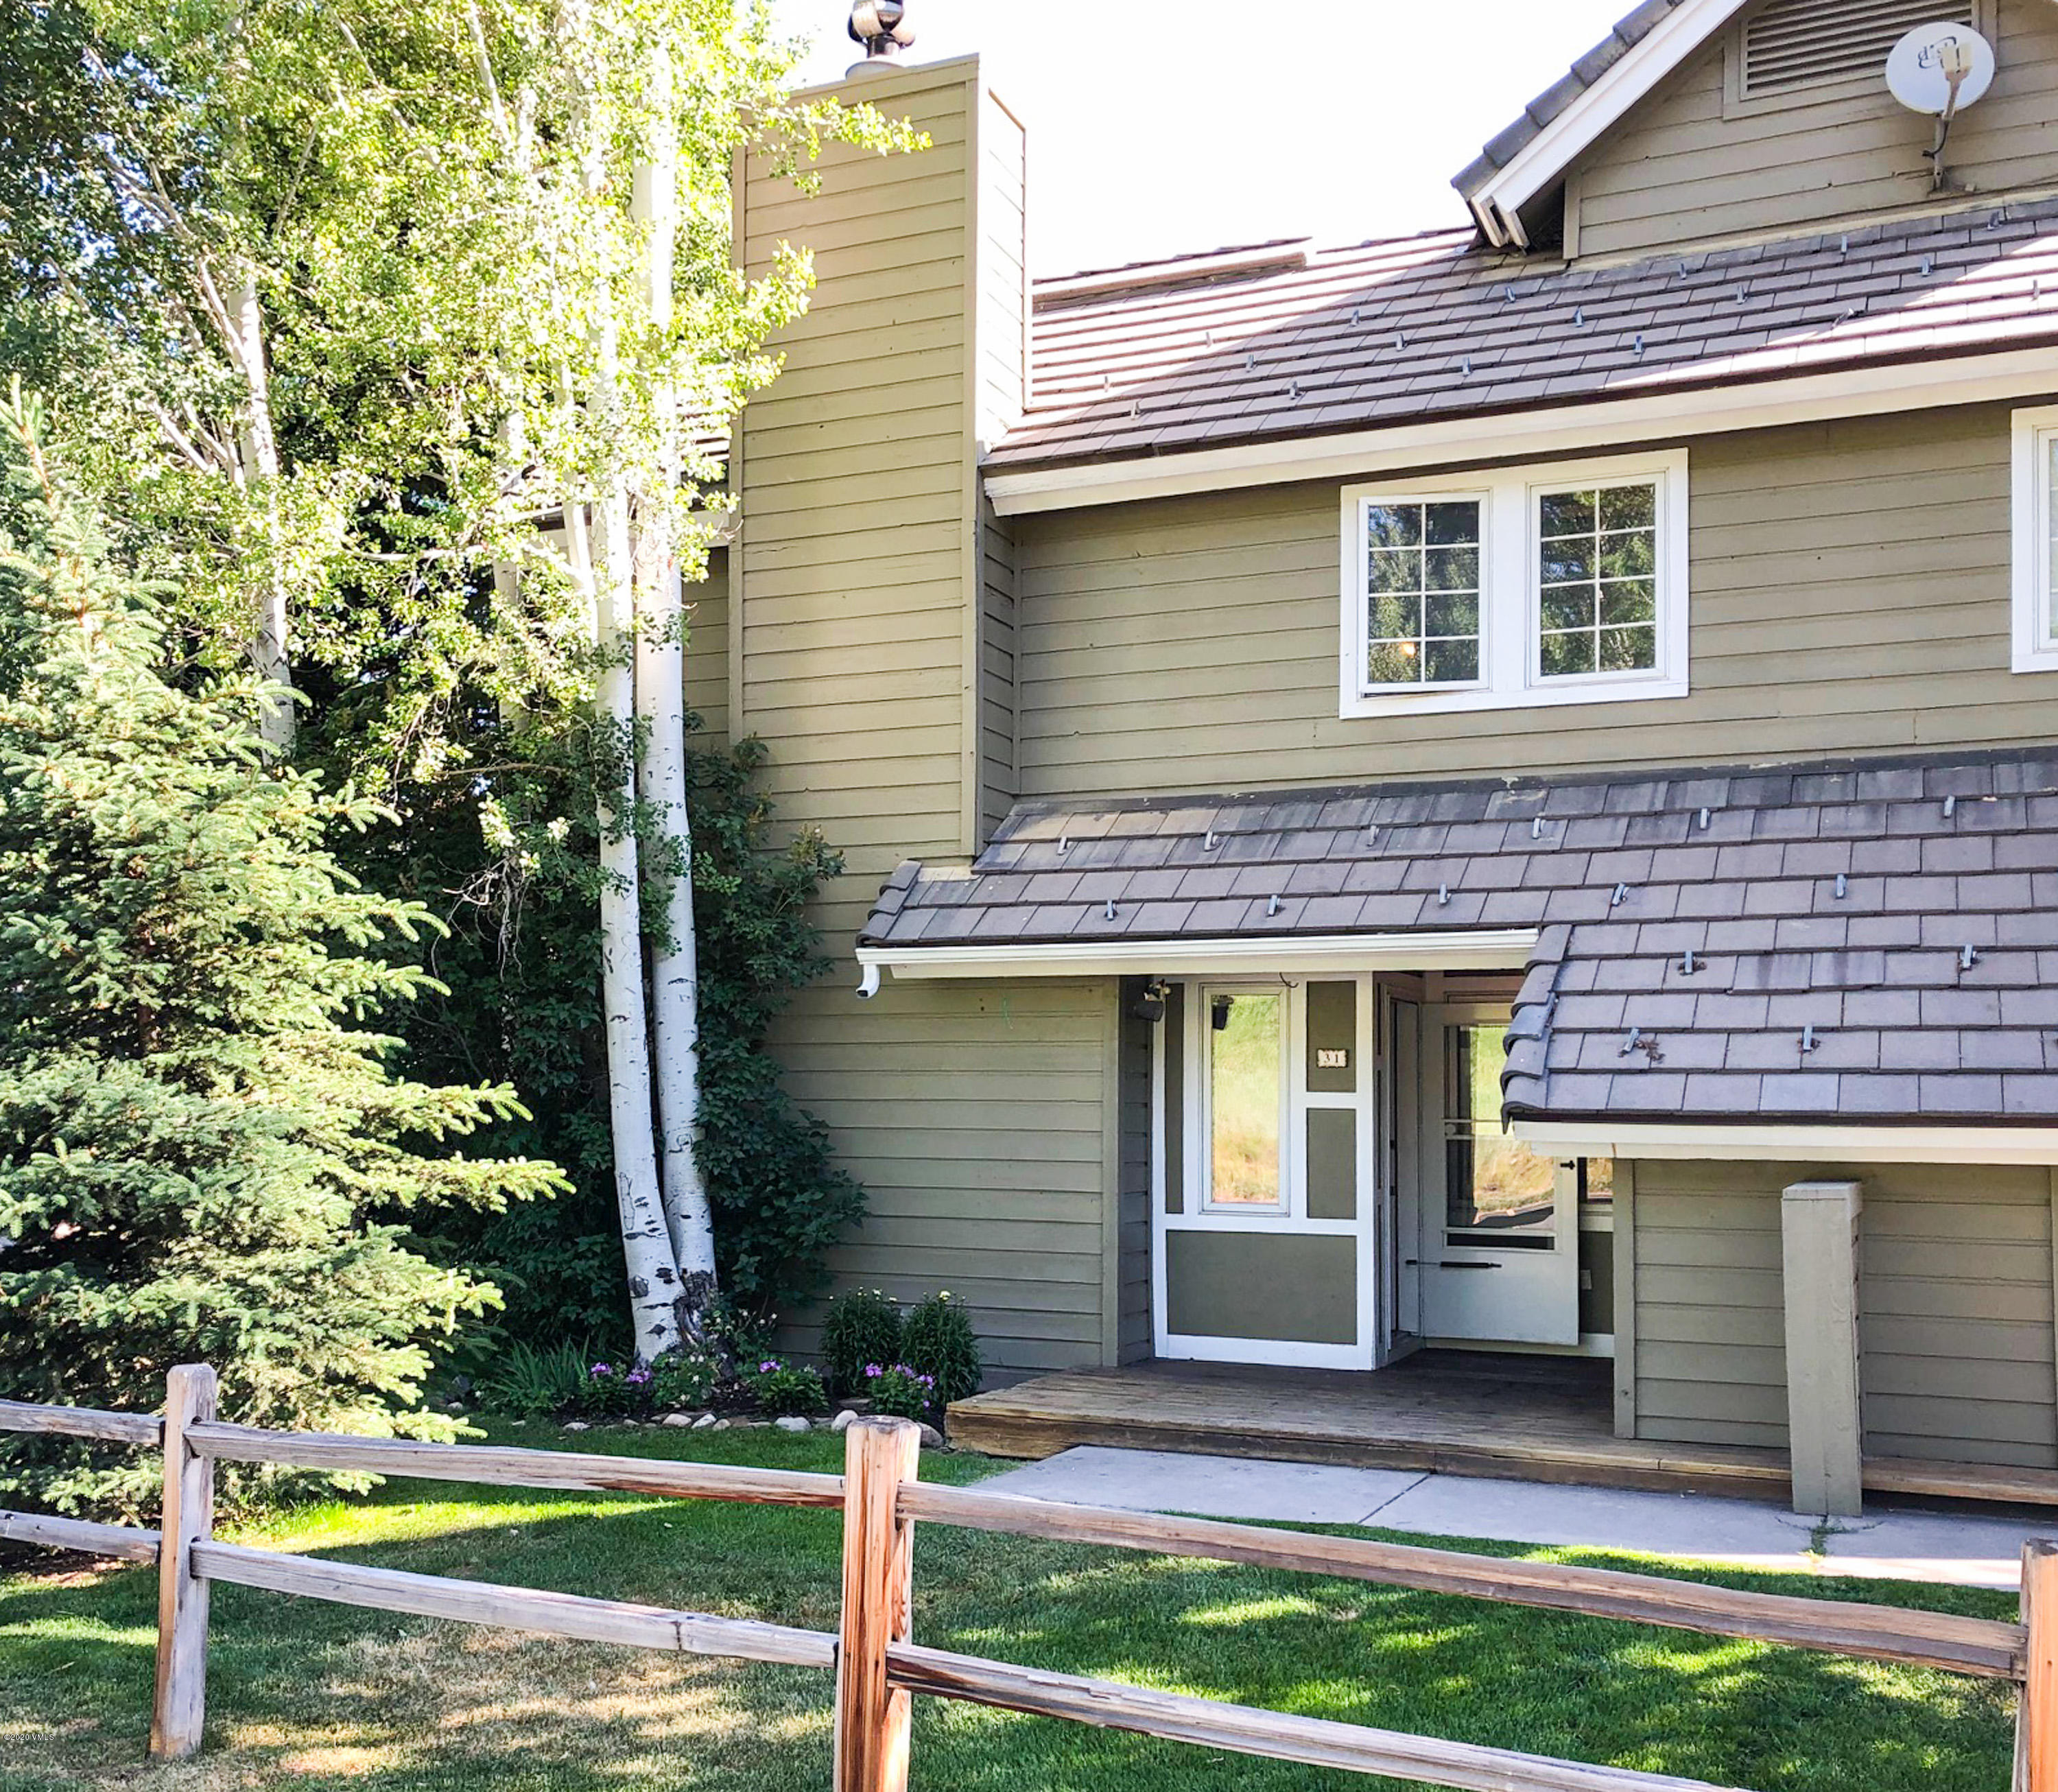 A great opportunity to own an adorable 3-bedroom plus loft, condo just steps from the Homestead Court Club in Edwards. Totally refreshed with new paint and carpet throughout. A wonderful first-time home or great rental property.